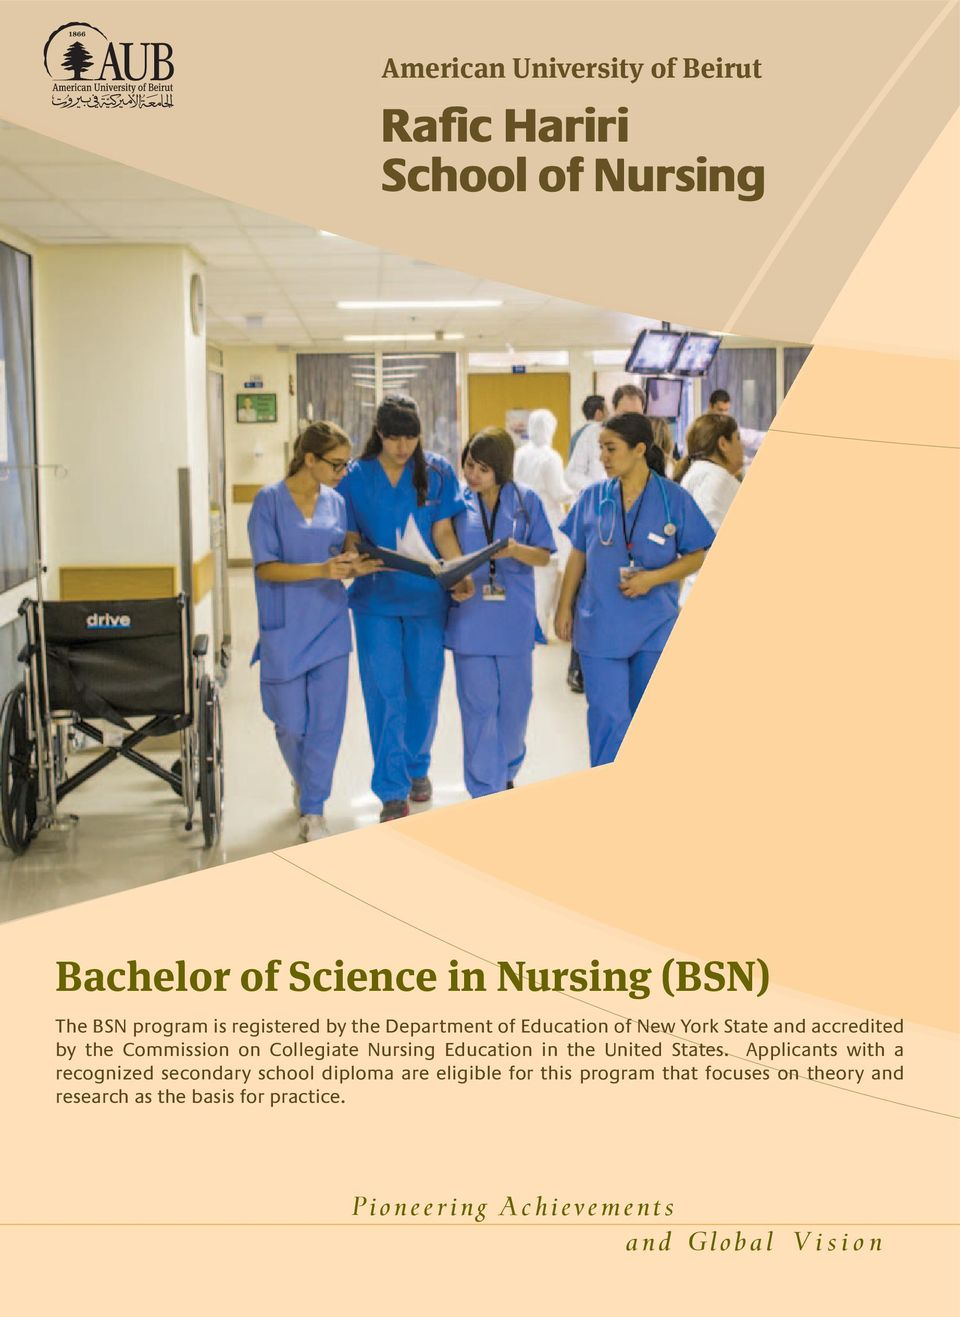 Commission on Collegiate Nursing Education in the United States.